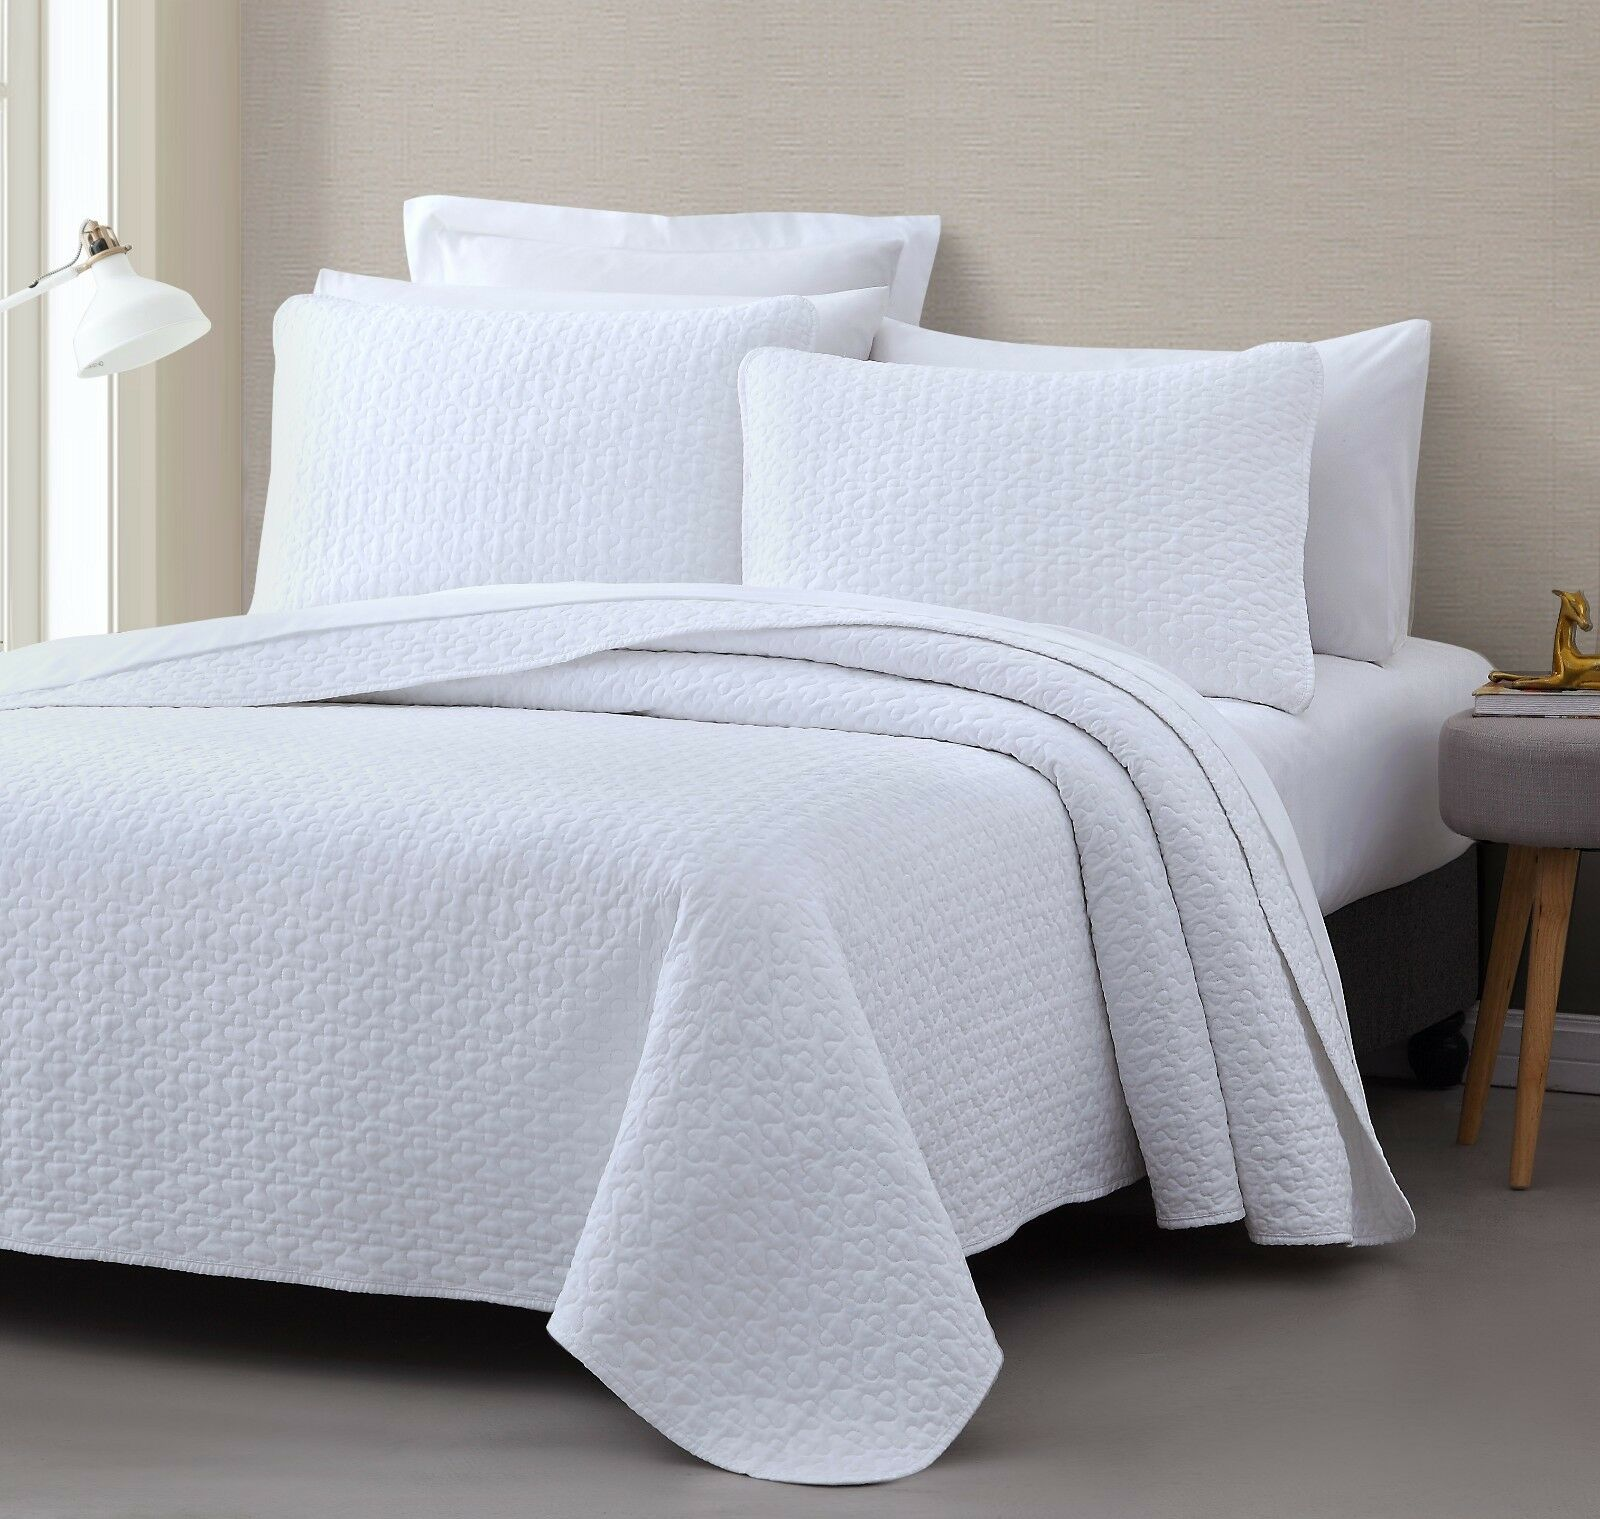 Vega 3pc Quilted Bedspread  Coverlet Set, Stitched pattern 100% Cotton Filling